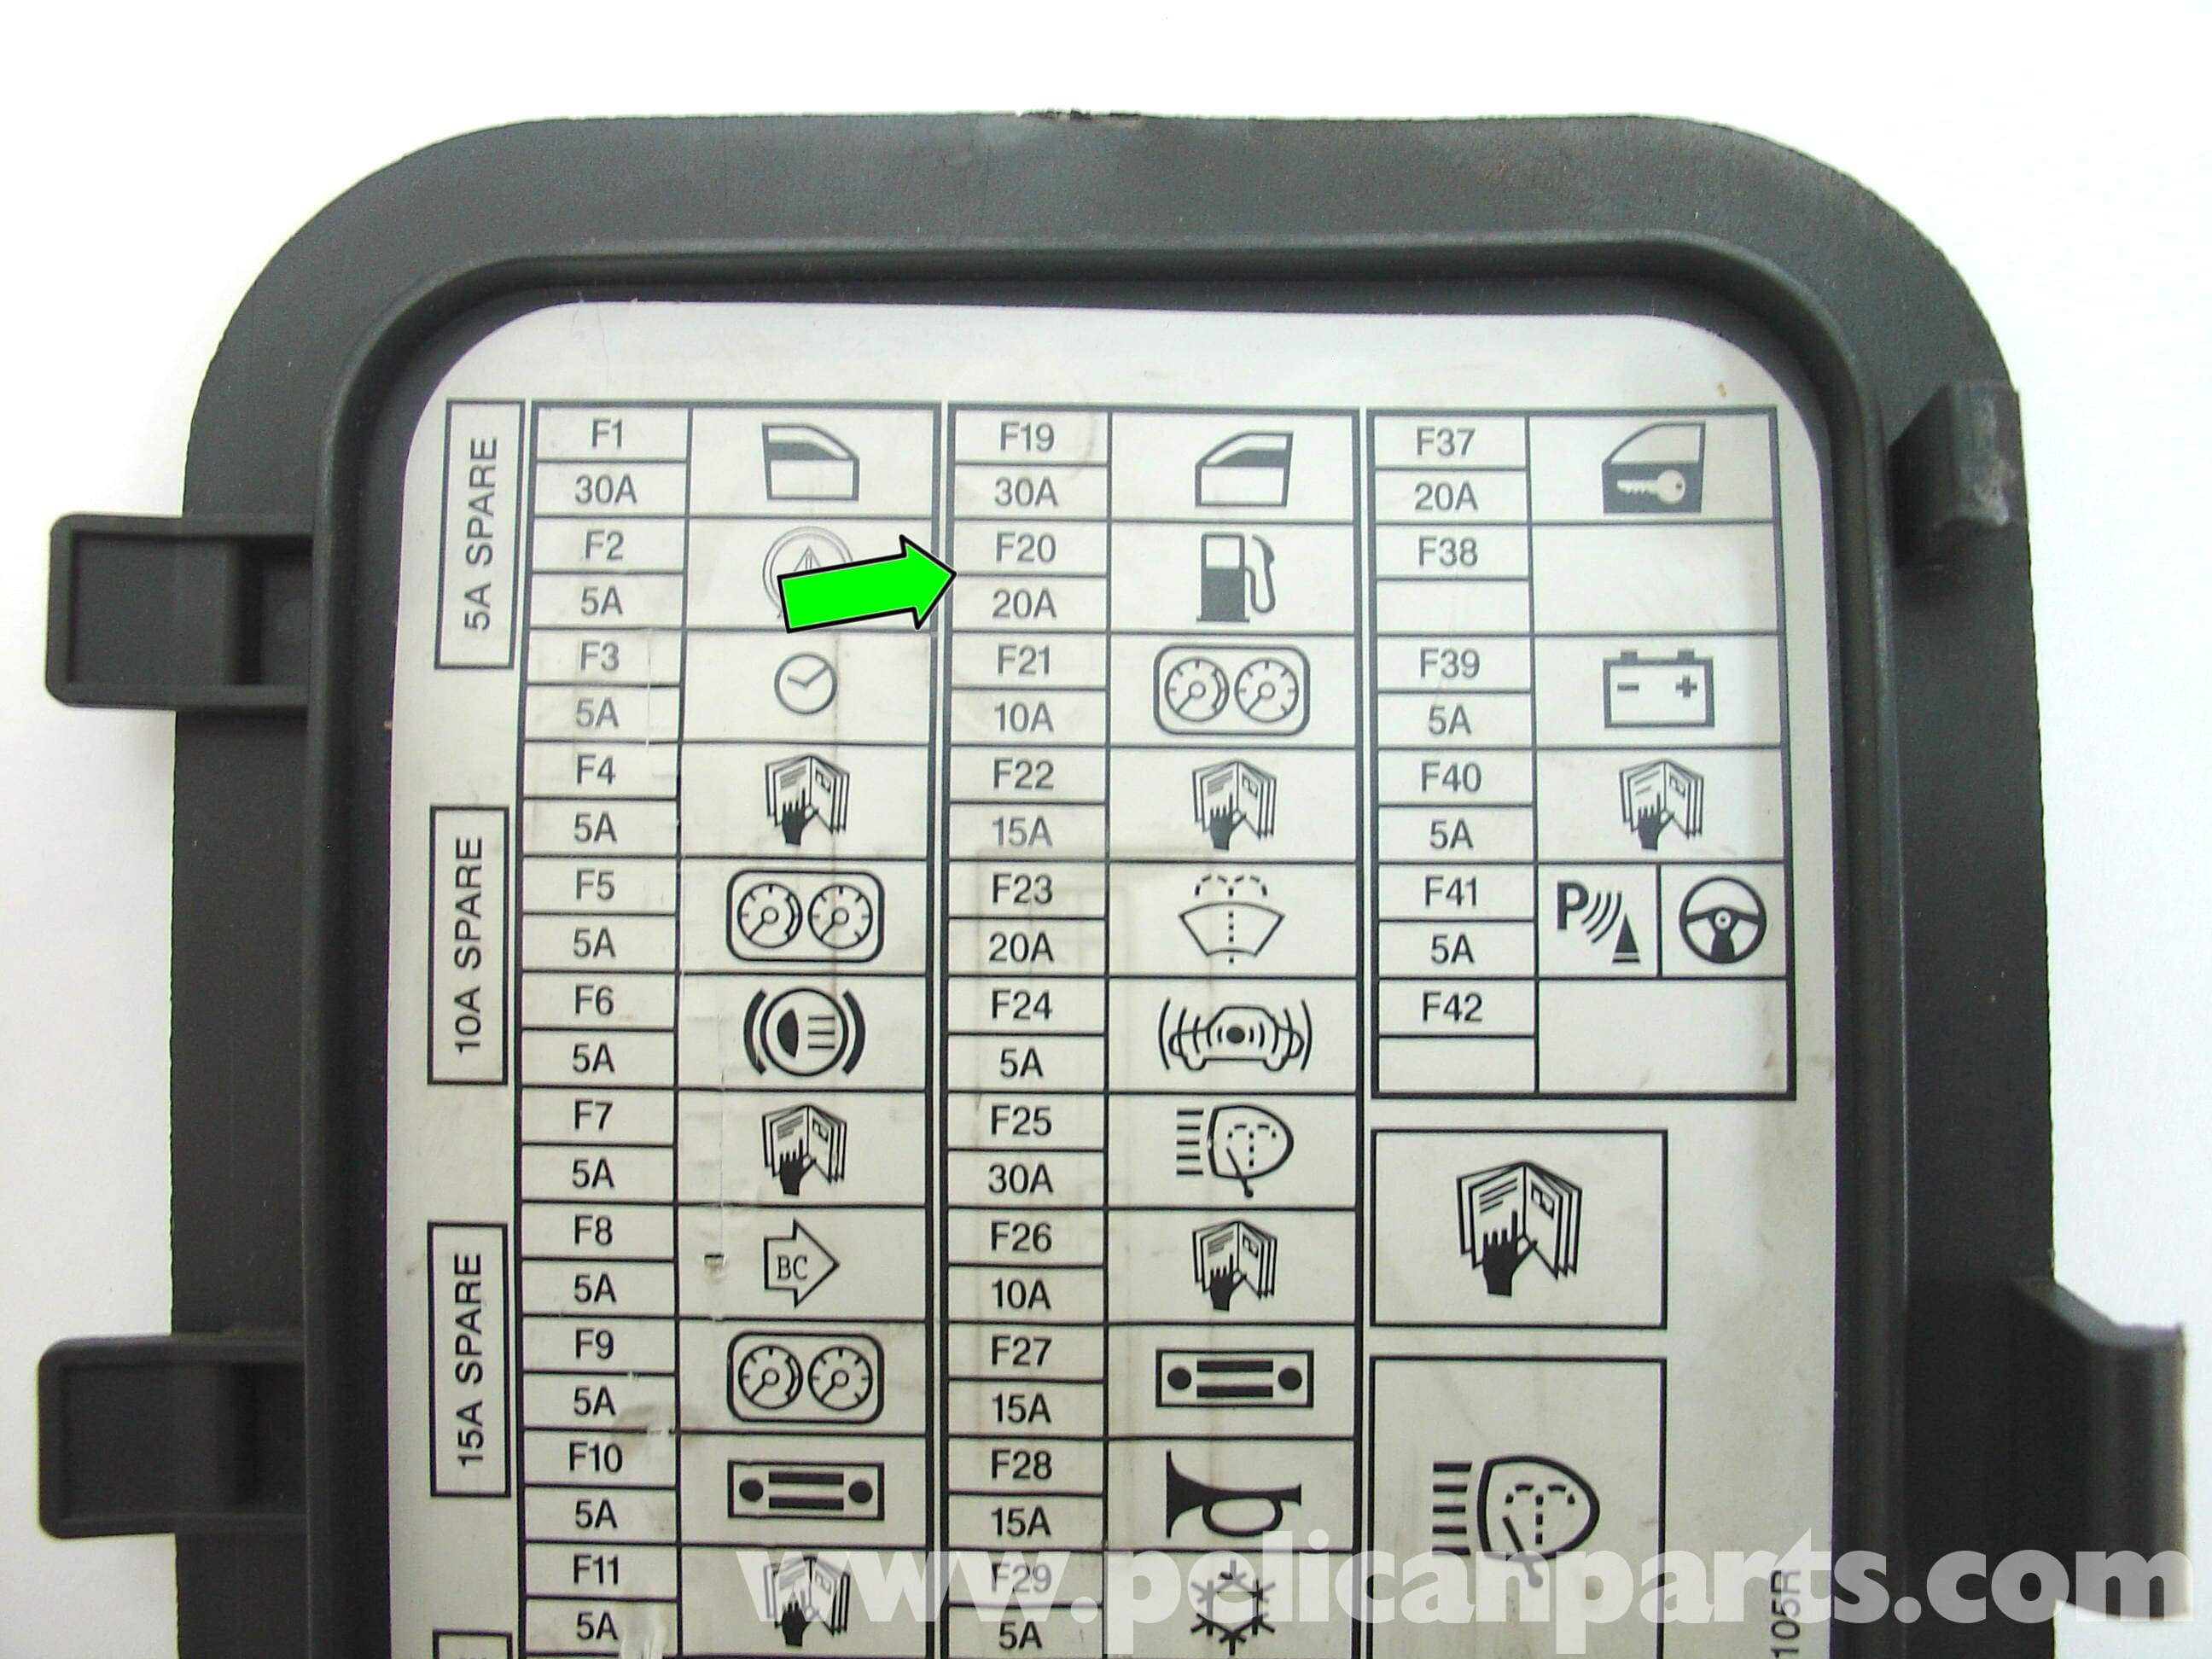 2009 Mini Cooper S Fuse Diagram Opinions About Wiring Hyundai Accent Box 28 Images Diagrams Mifinder Co 2003